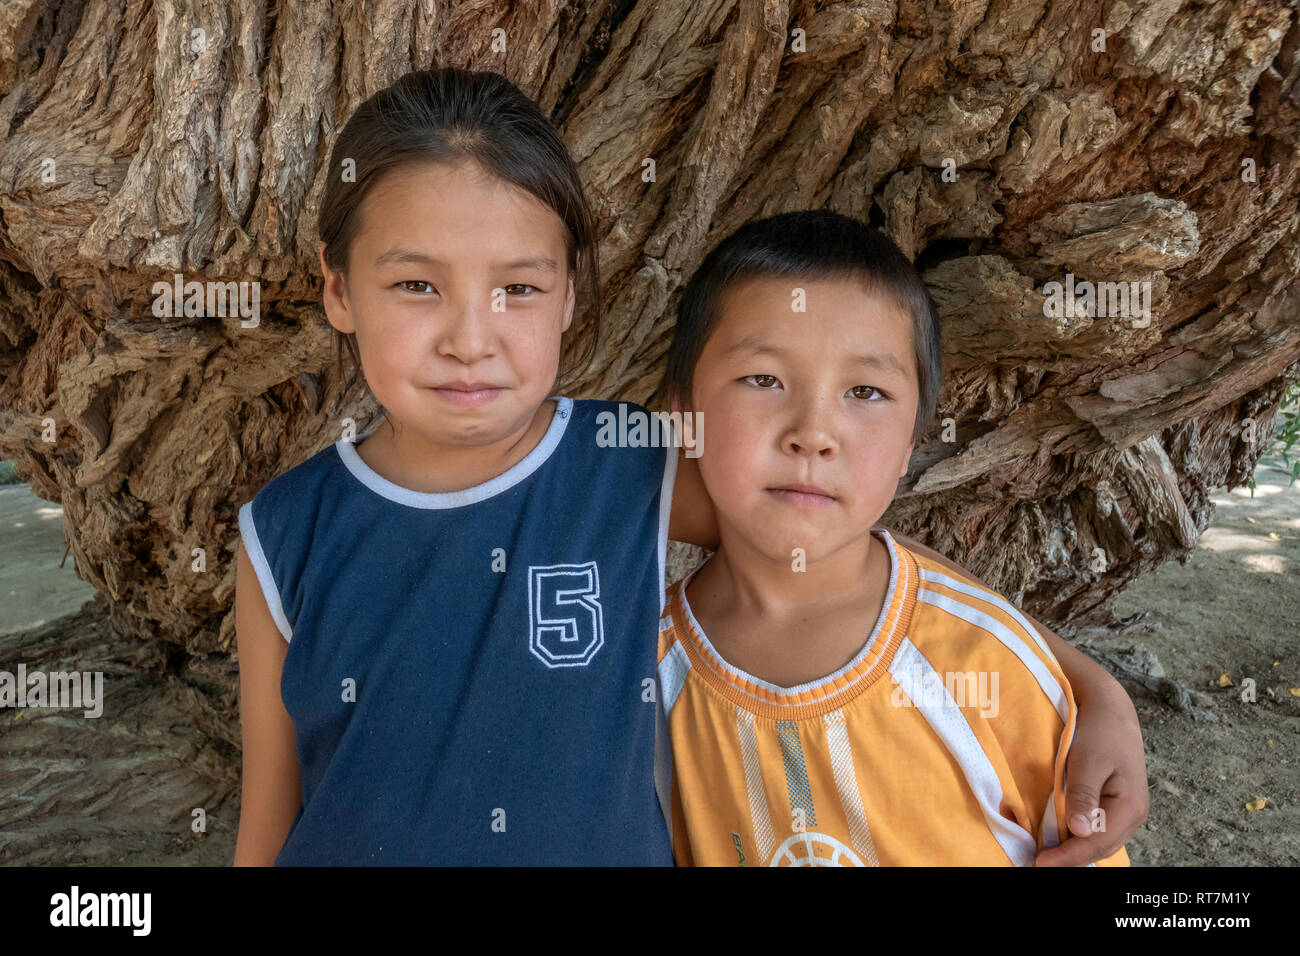 Kazakh brother and sister by a 700 year old willow tree, Altyn Emel National Park, Kazakhstan - Stock Image